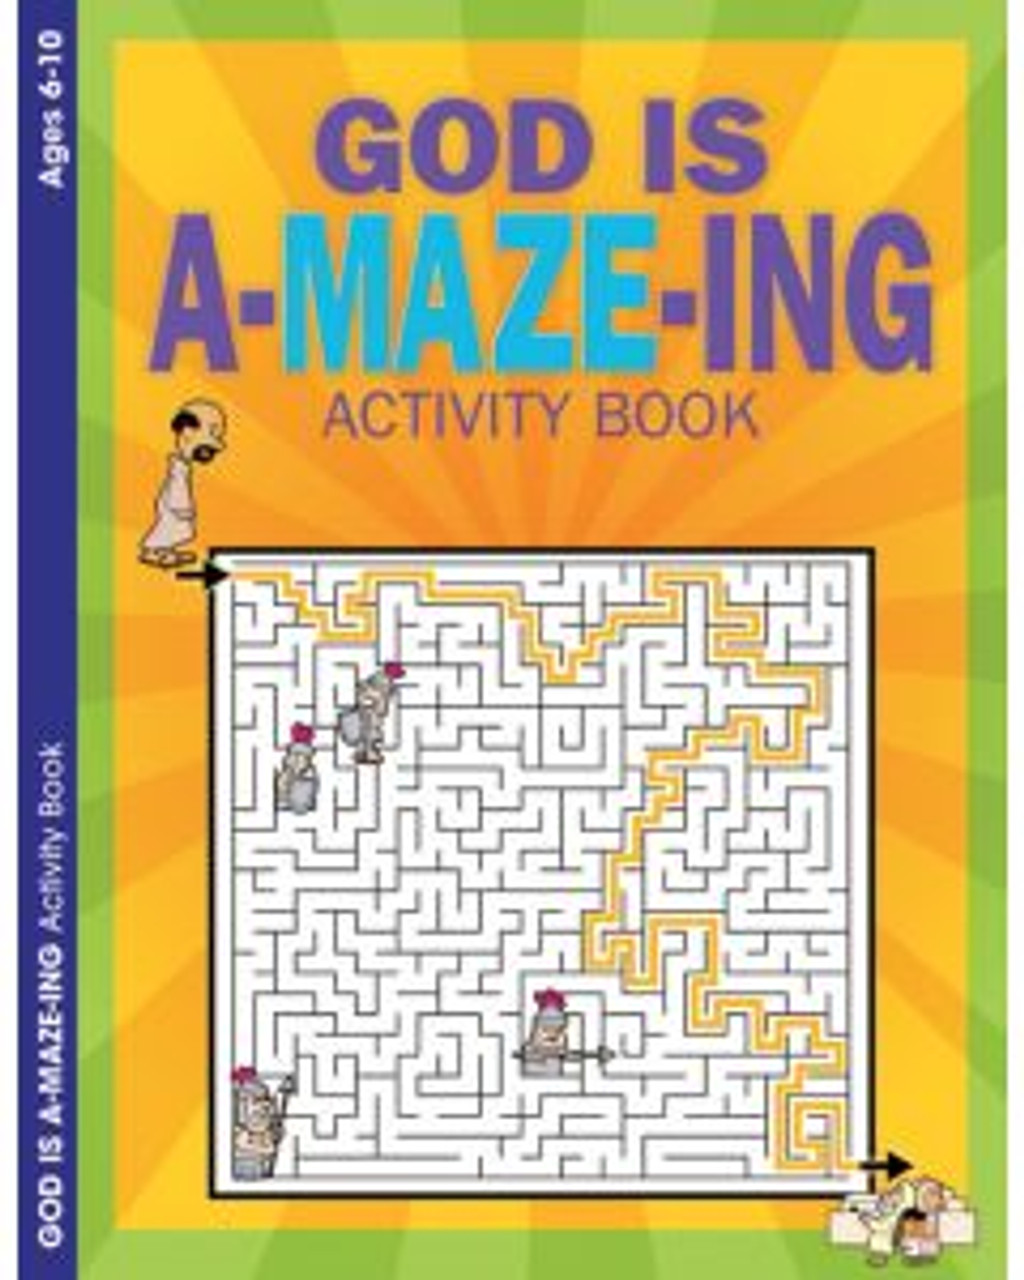 God is A-maze-ing (activity book)